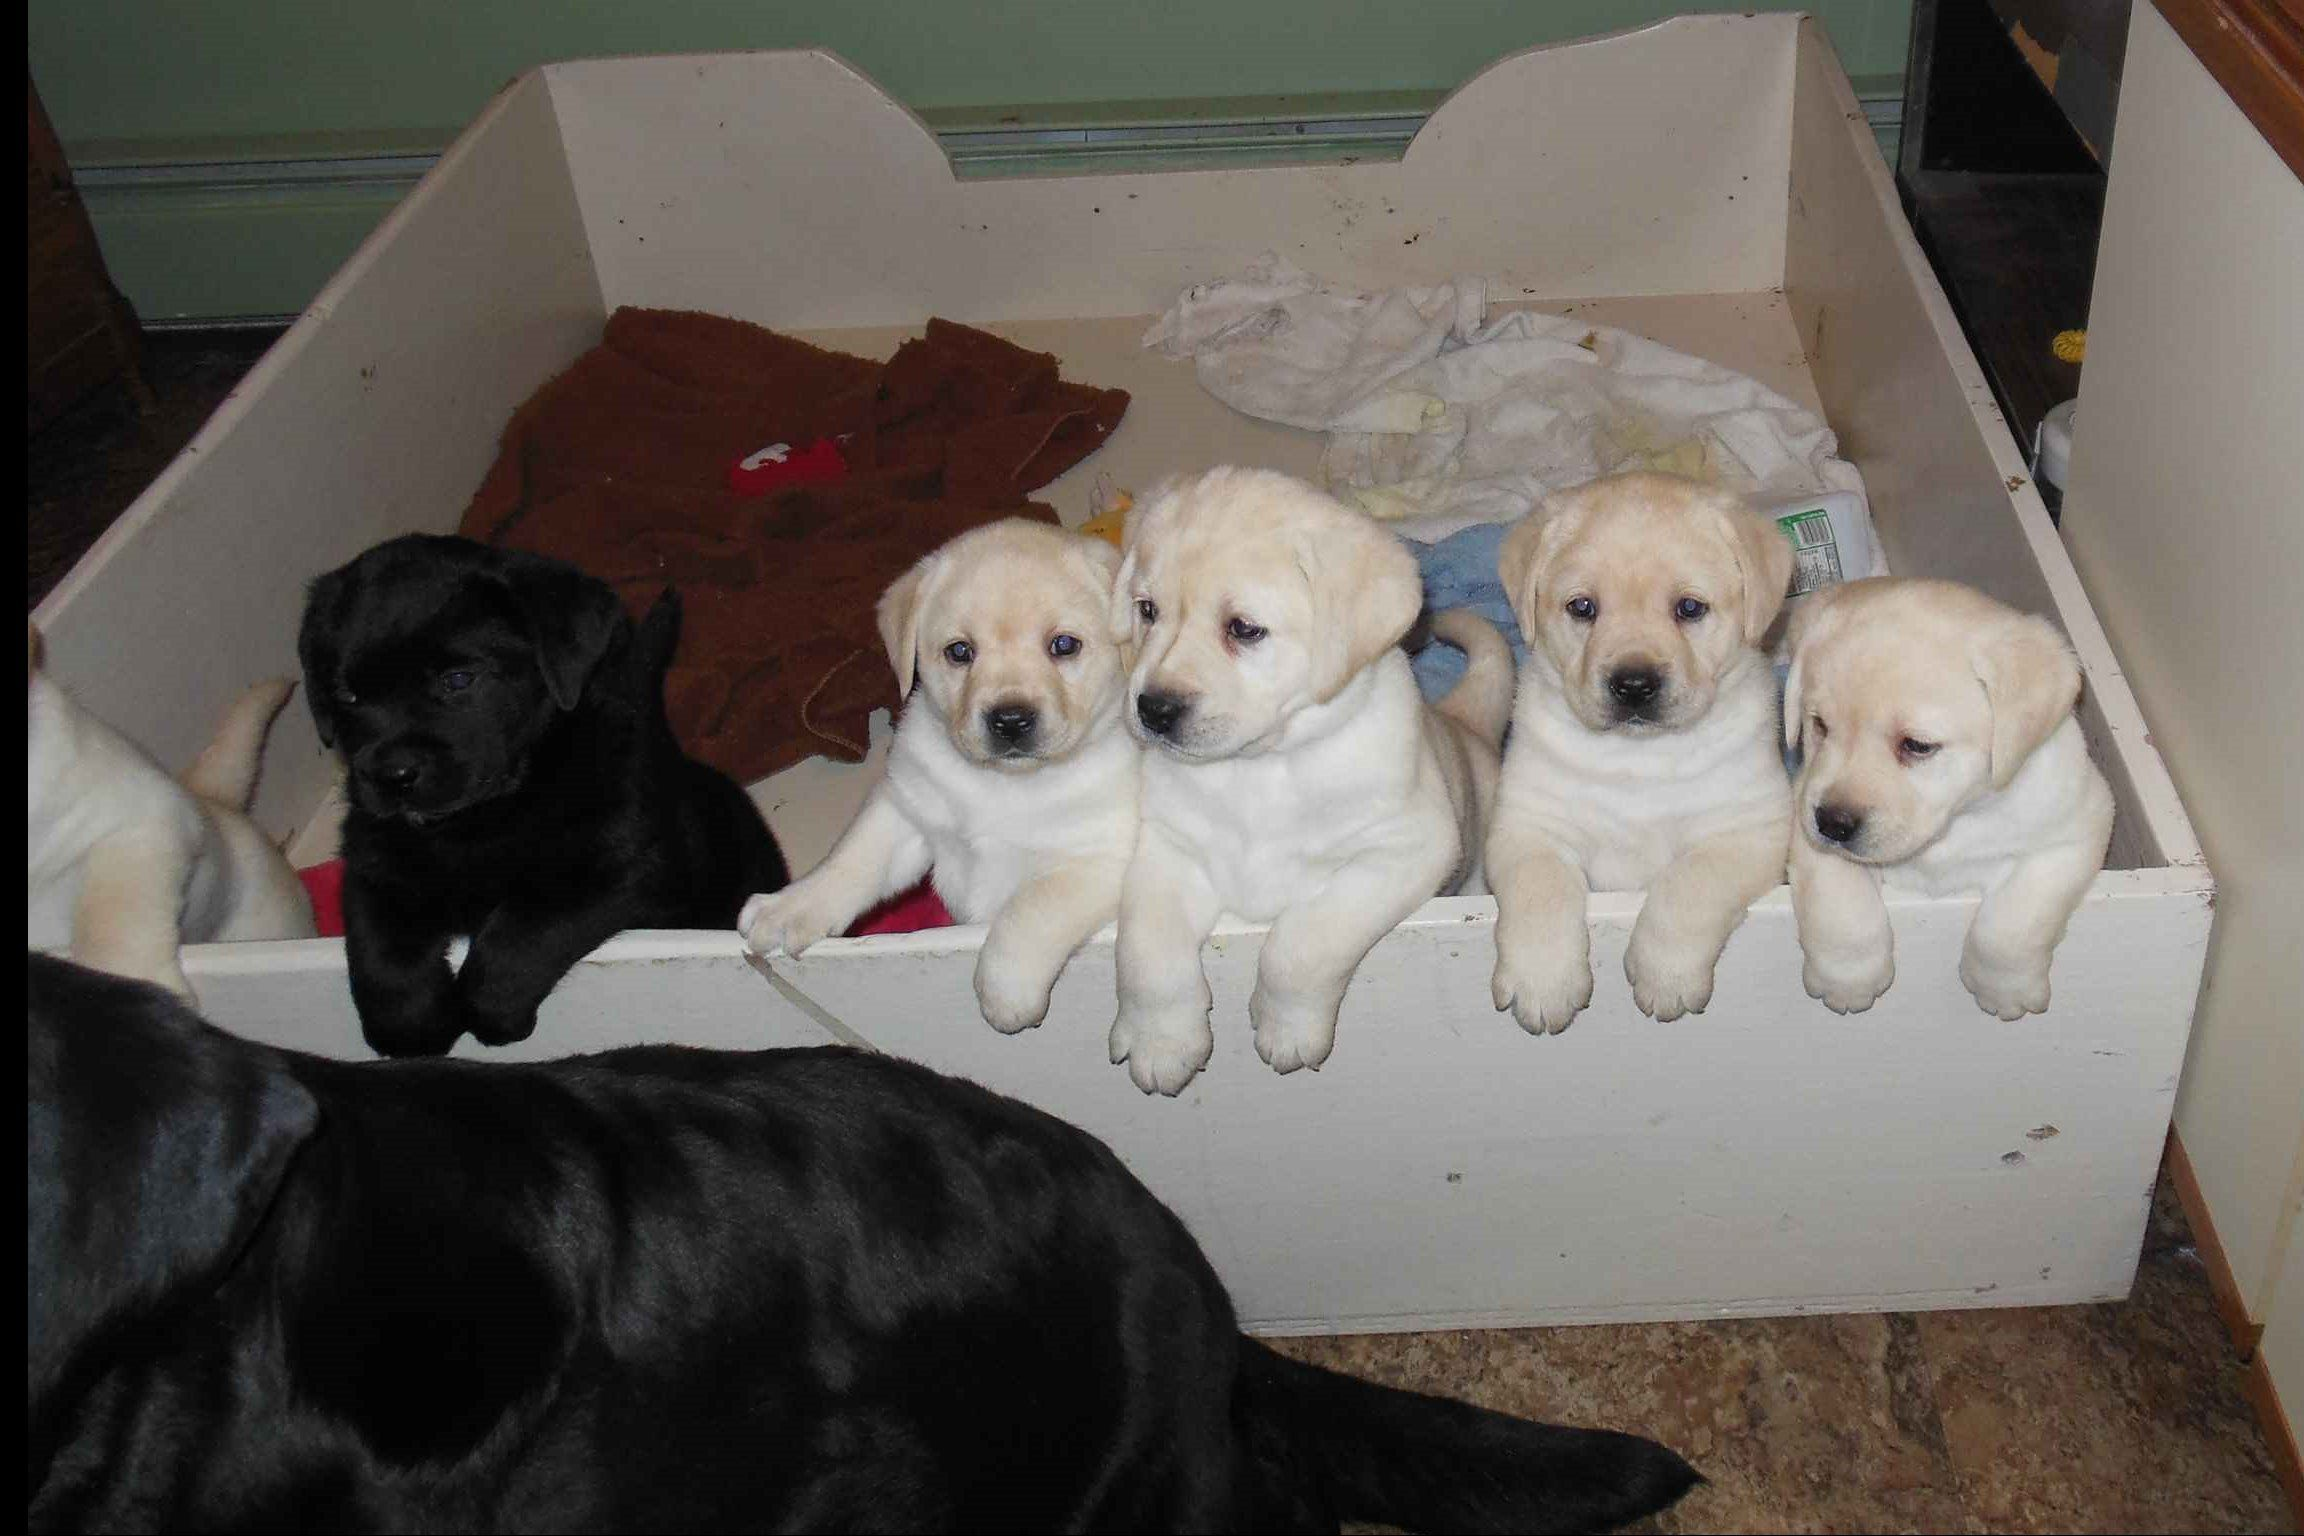 Karen Miller Has Labrador Retriever Puppies For Sale In Great Meadows Nj On Akc Puppyfinder Labrador Breeders Labrador Retriever Labrador Retriever Puppies